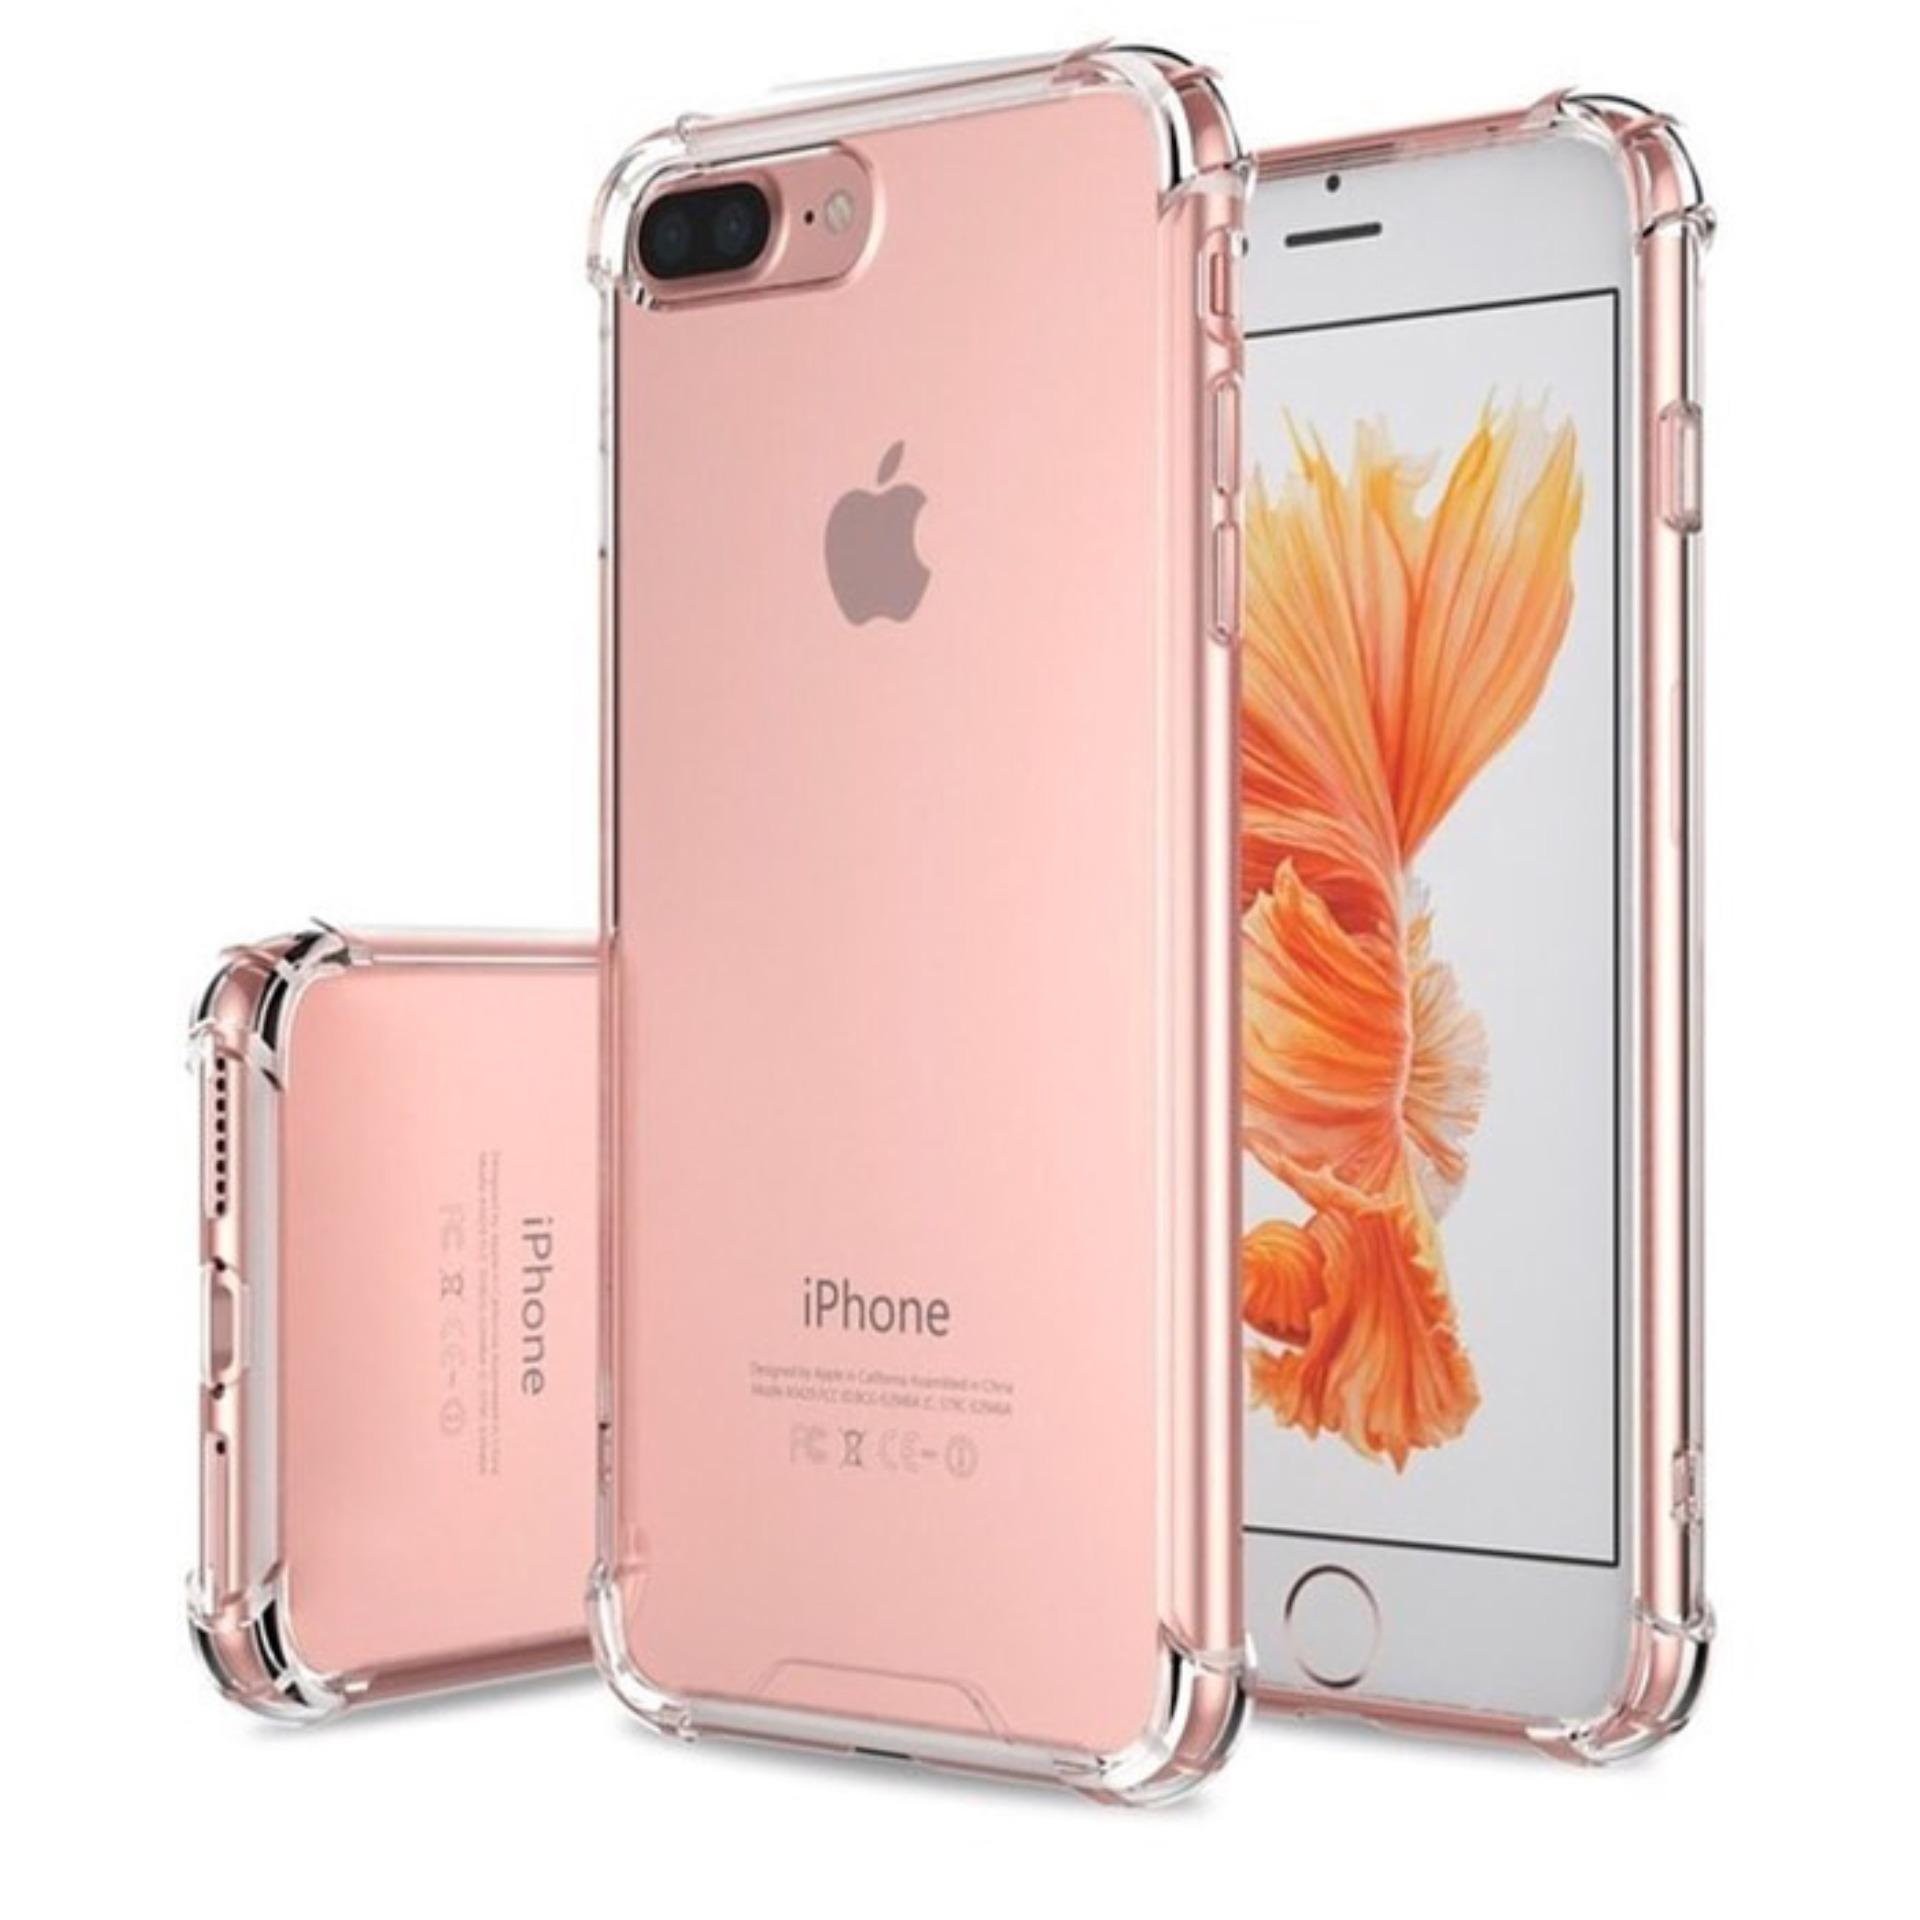 iPhone 8 Plus Acrylic Anticrack Mika Case - Belakang Acrilic Keras - Pinggir Silicone Soft - Clear